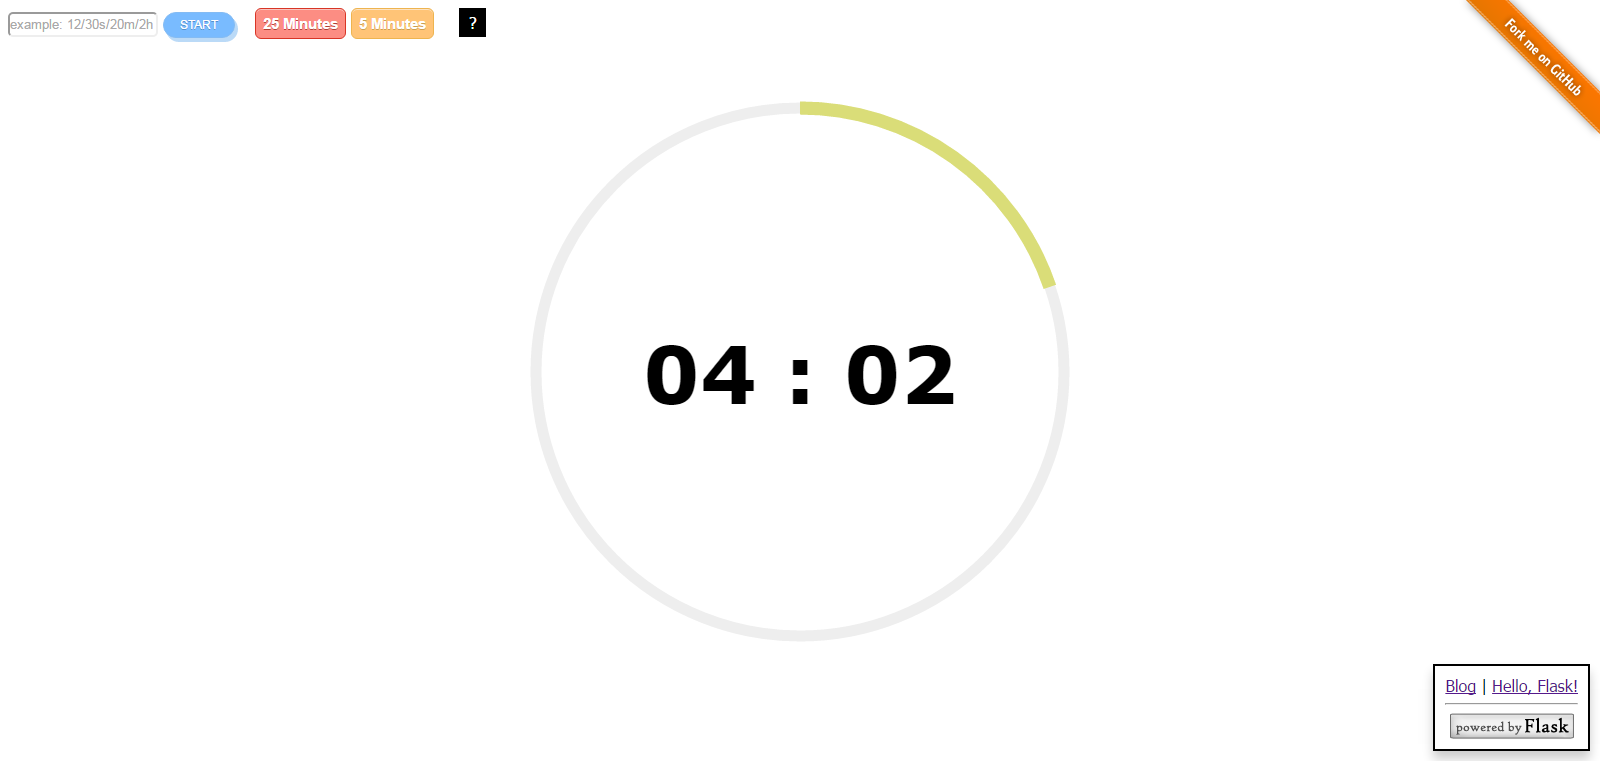 GitHub - helloflask/timer: A simple countdown timer made with Flask